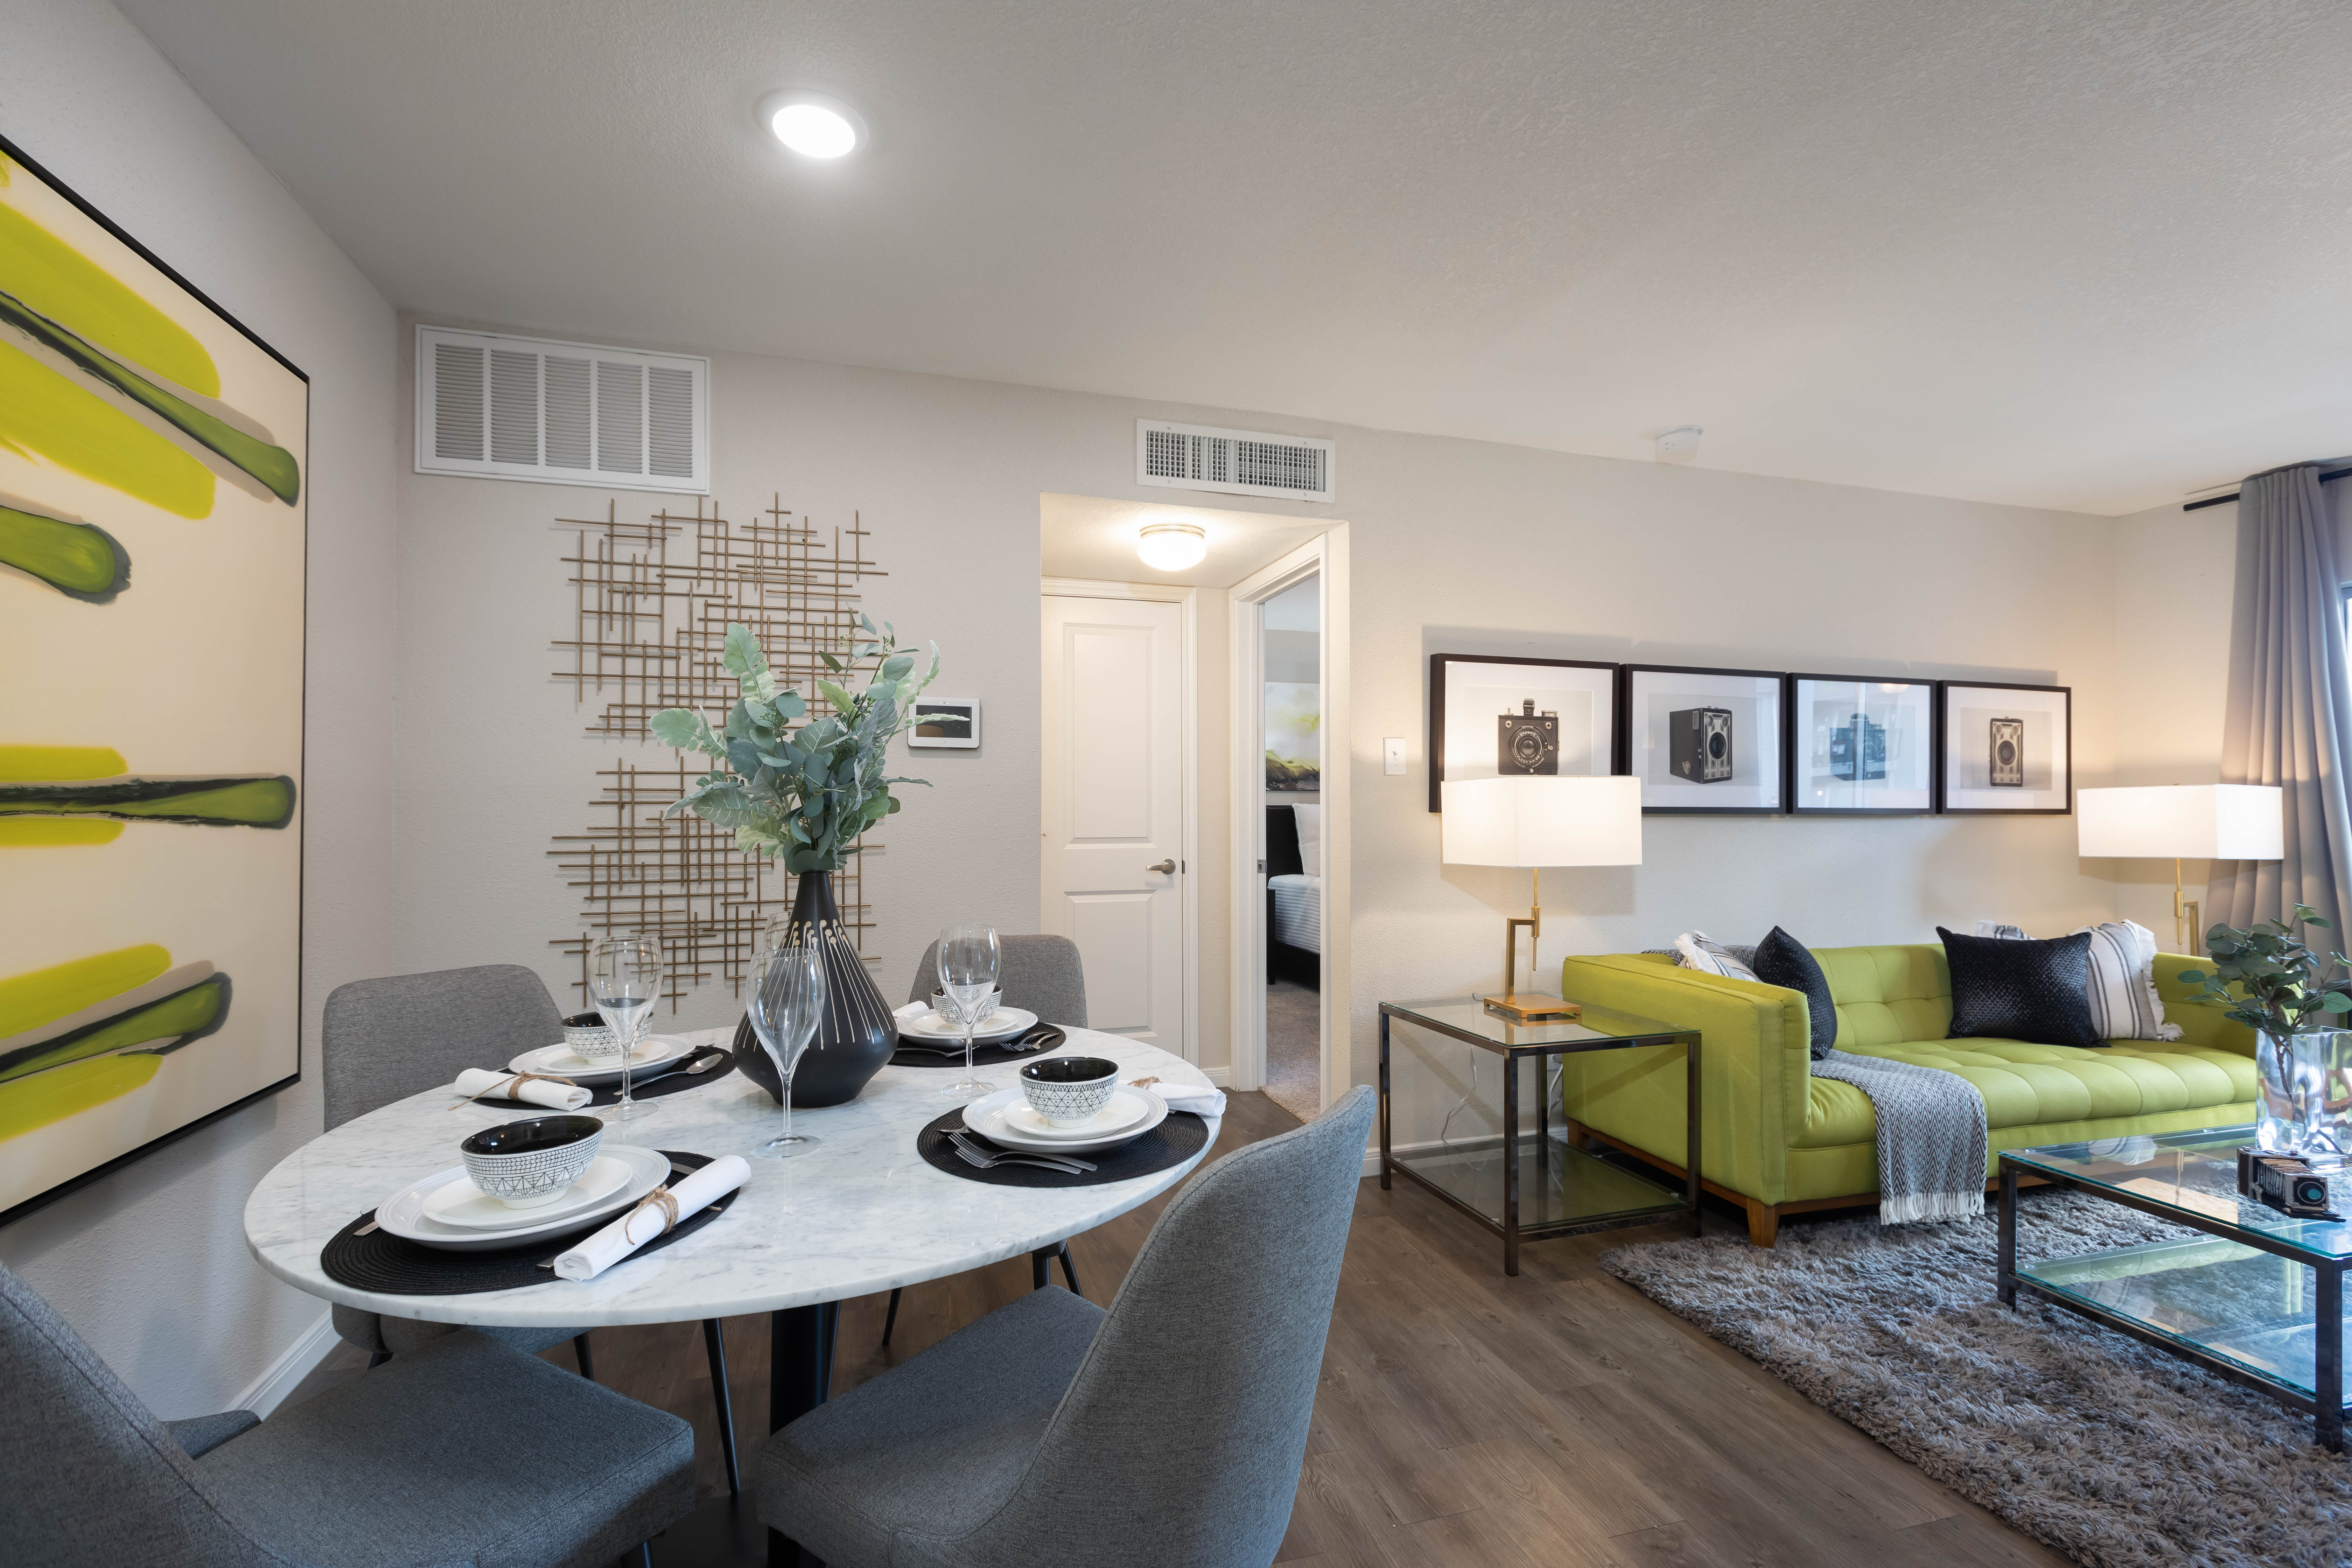 Open-concept floor plan with hardwood floors and accent wall in the living area of model home at Lodge @ 1550 in Katy, Texas